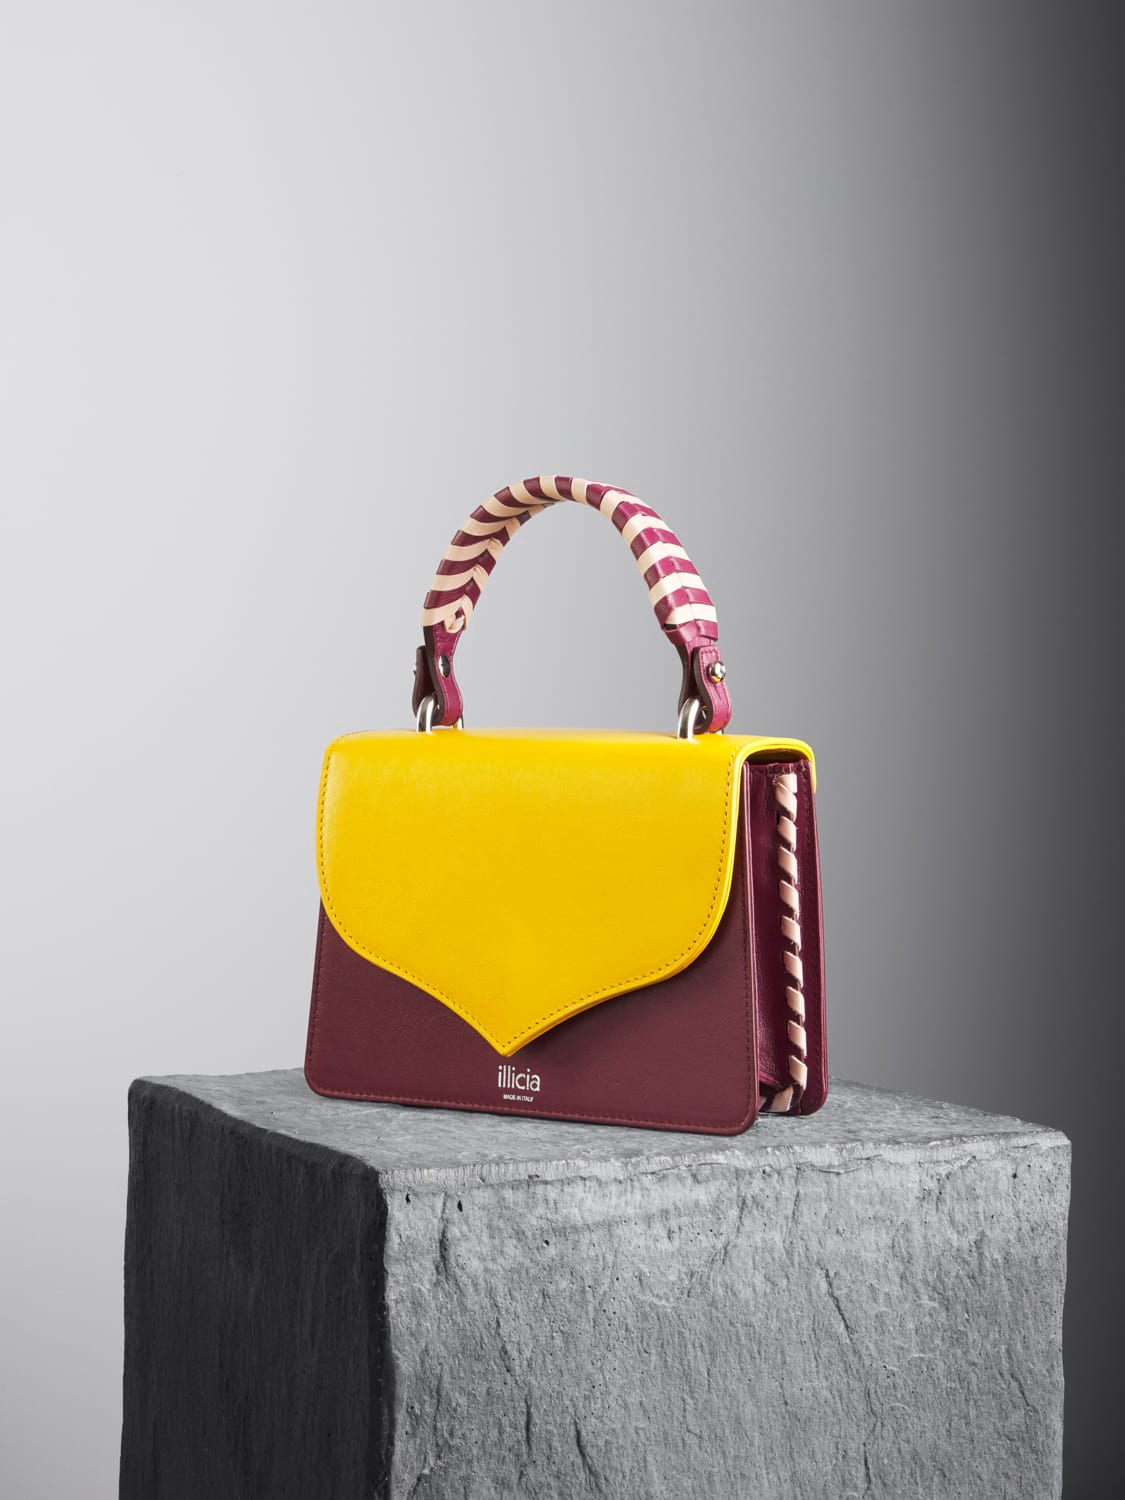 Yellow and Oxblood Celina 2.0 Top Handle Bag with oxblood and nude braided handle, illicia